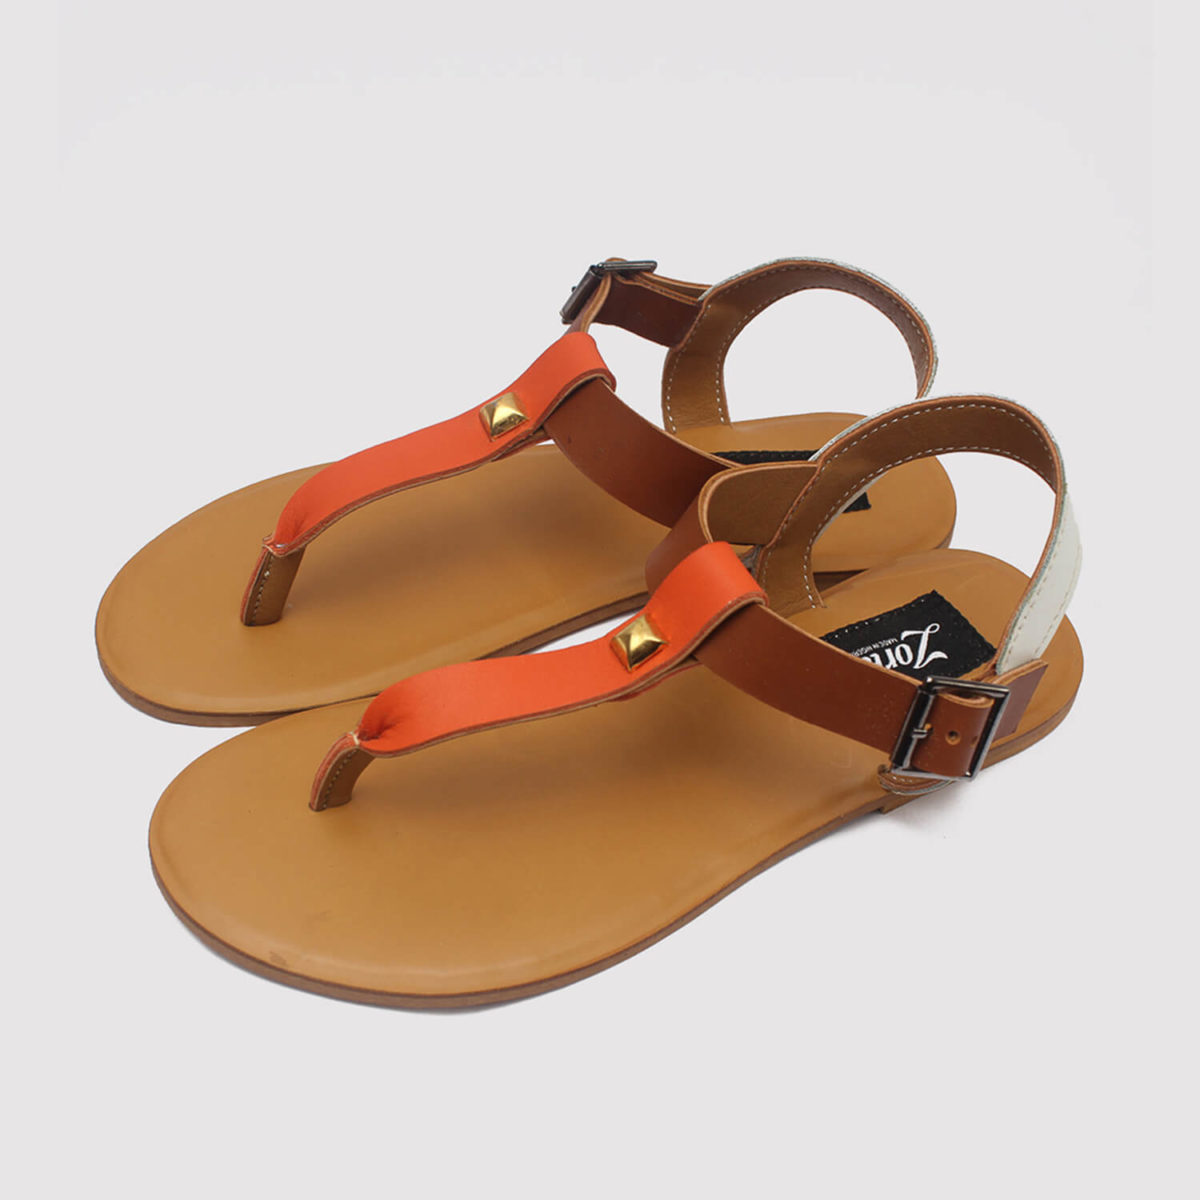 toke sandals orange brown white zorkle shoes in lagos nigeria